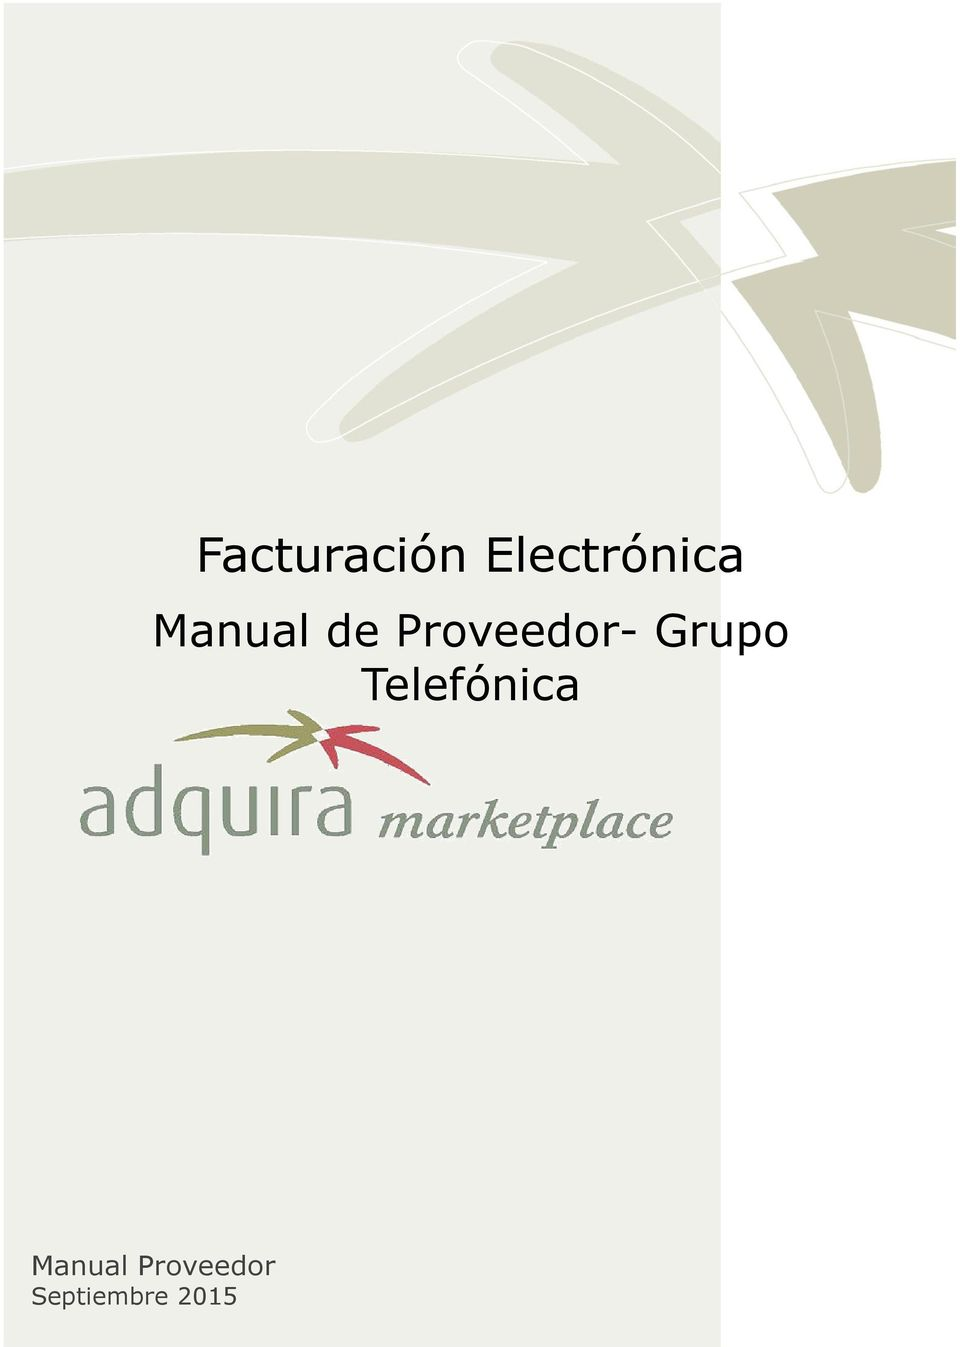 Grupo Telefónica Manual